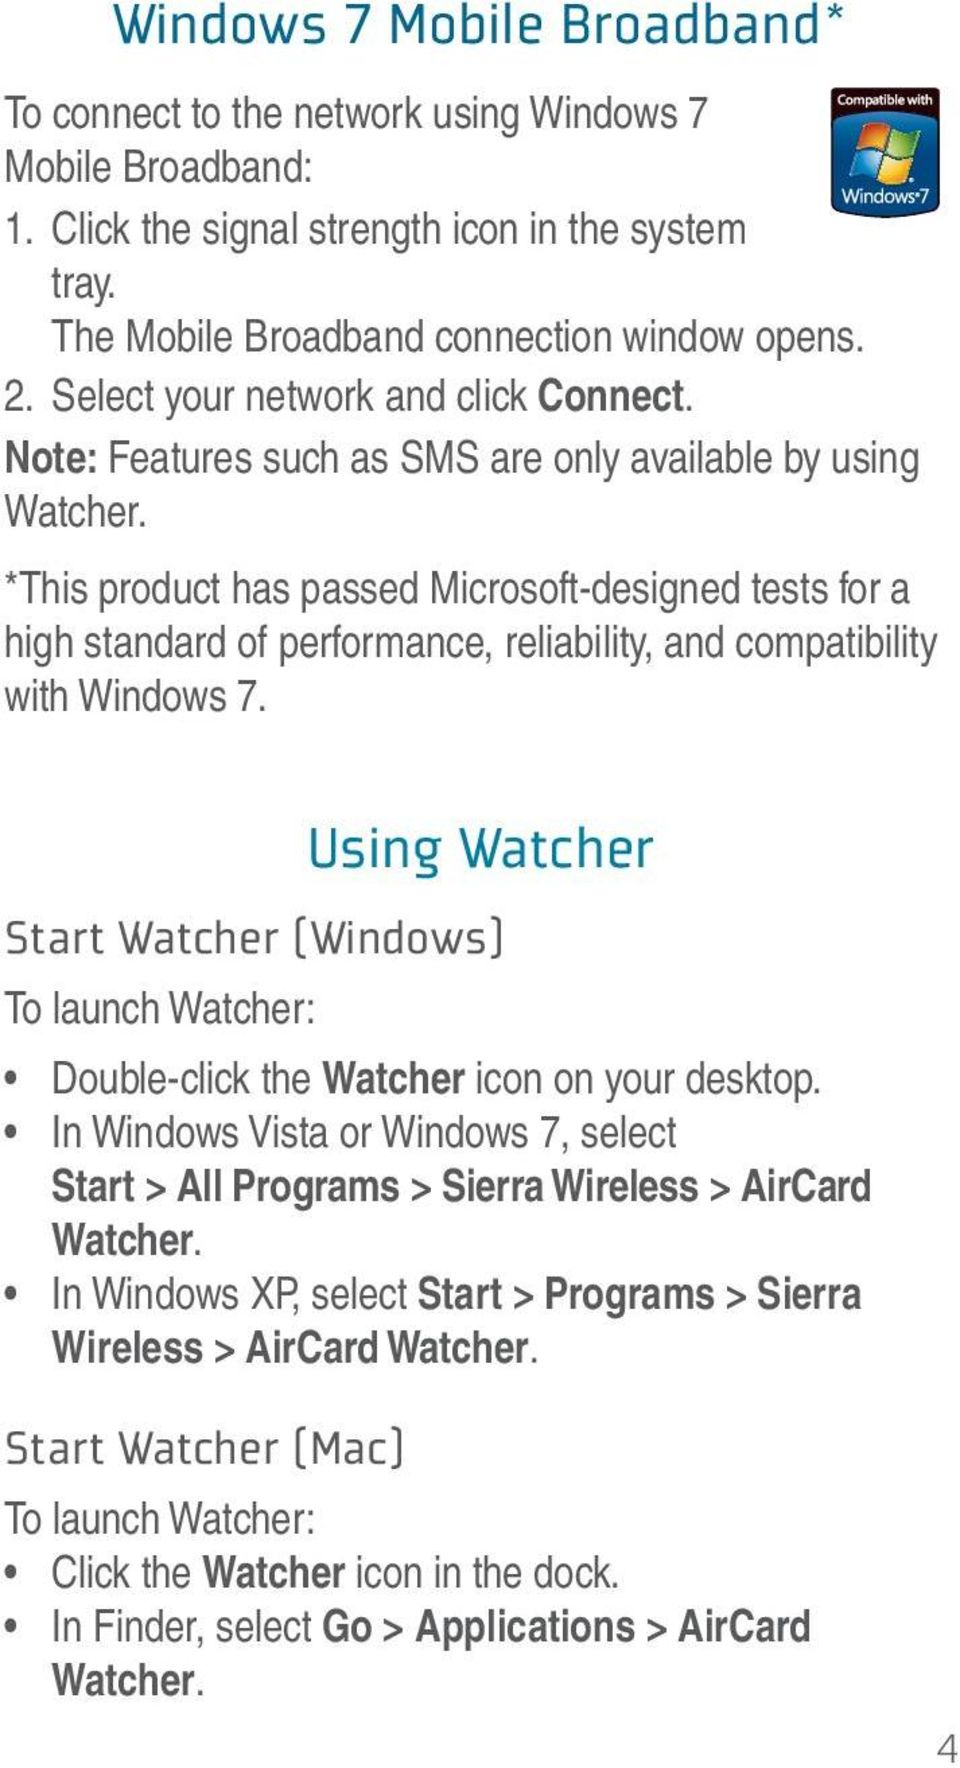 *This product has passed Microsoft-designed tests for a high standard of performance, reliability, and compatibility with Windows 7.